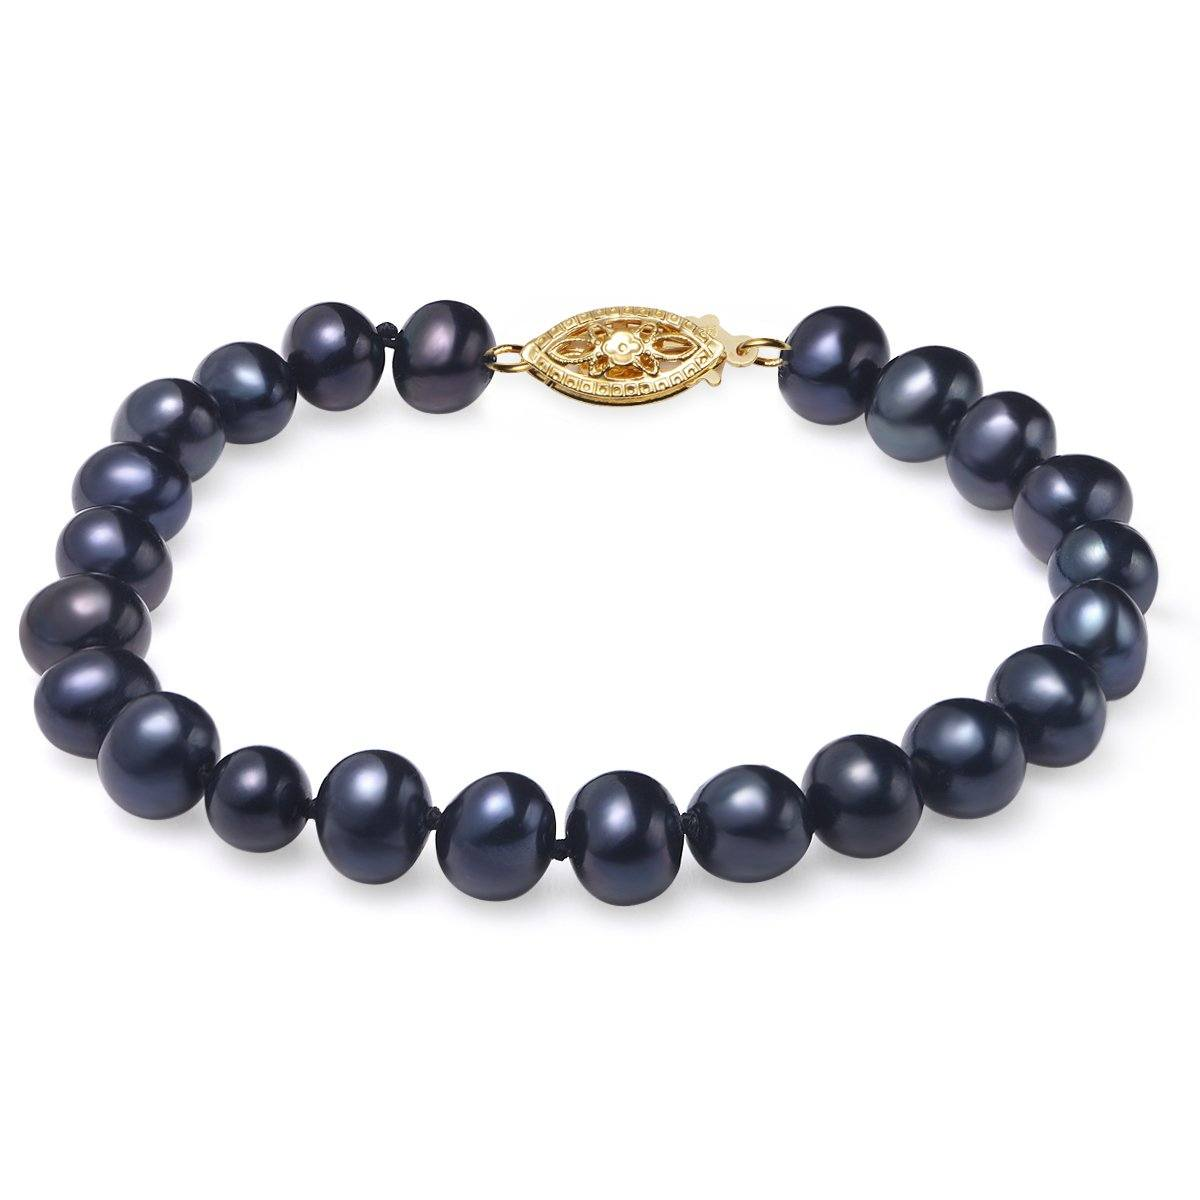 black pearl bracelet 7-8 mm aa cultured freshwater pearls